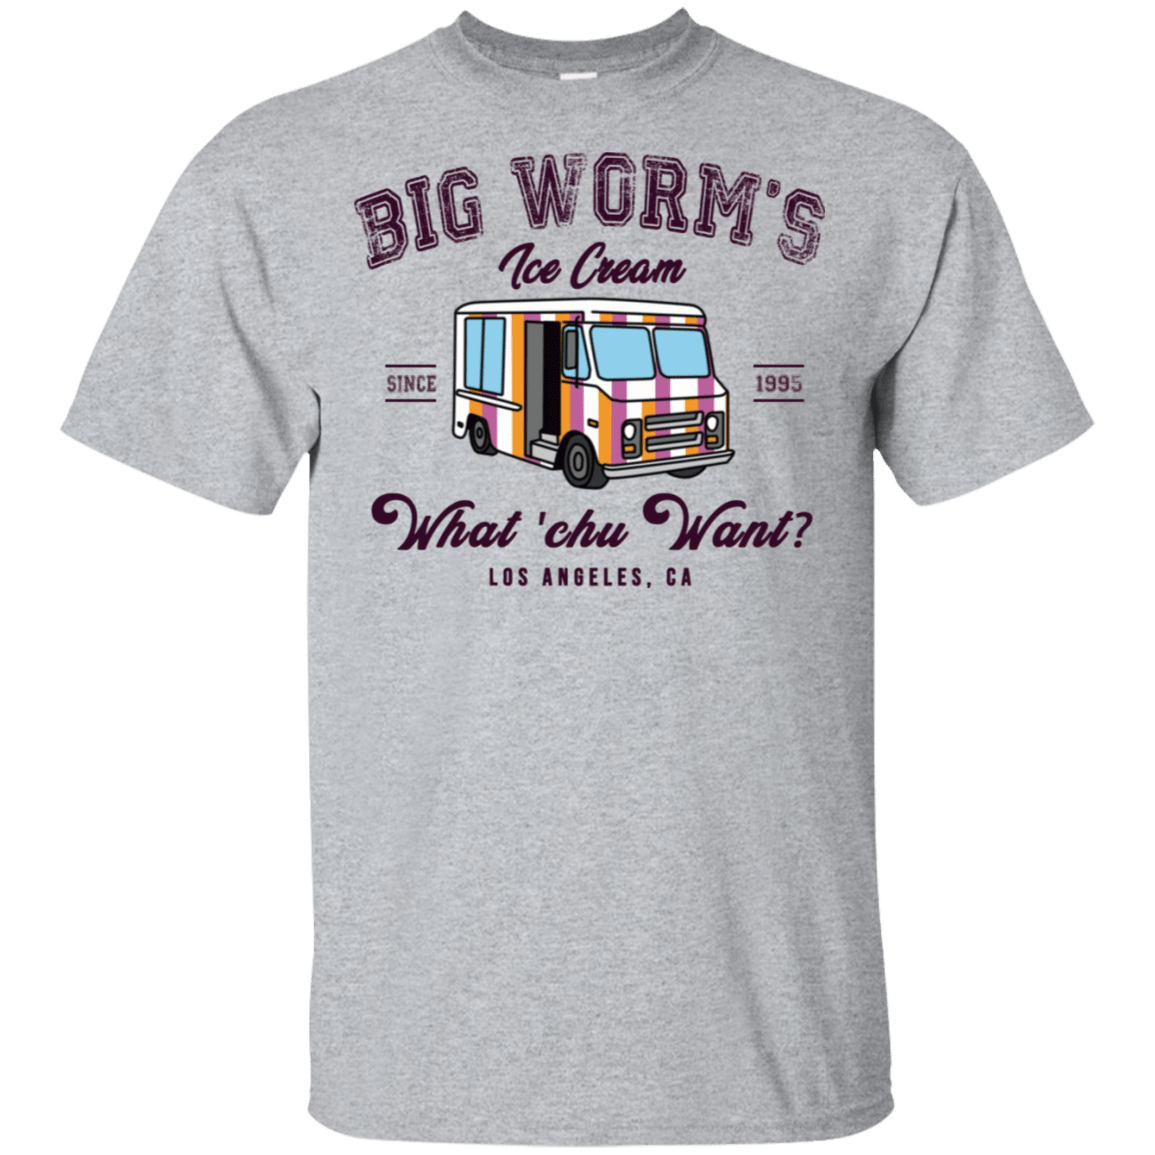 Big Worm's Ice Cream What 'chu Want 22-115-73514261-254 - Tee Ript